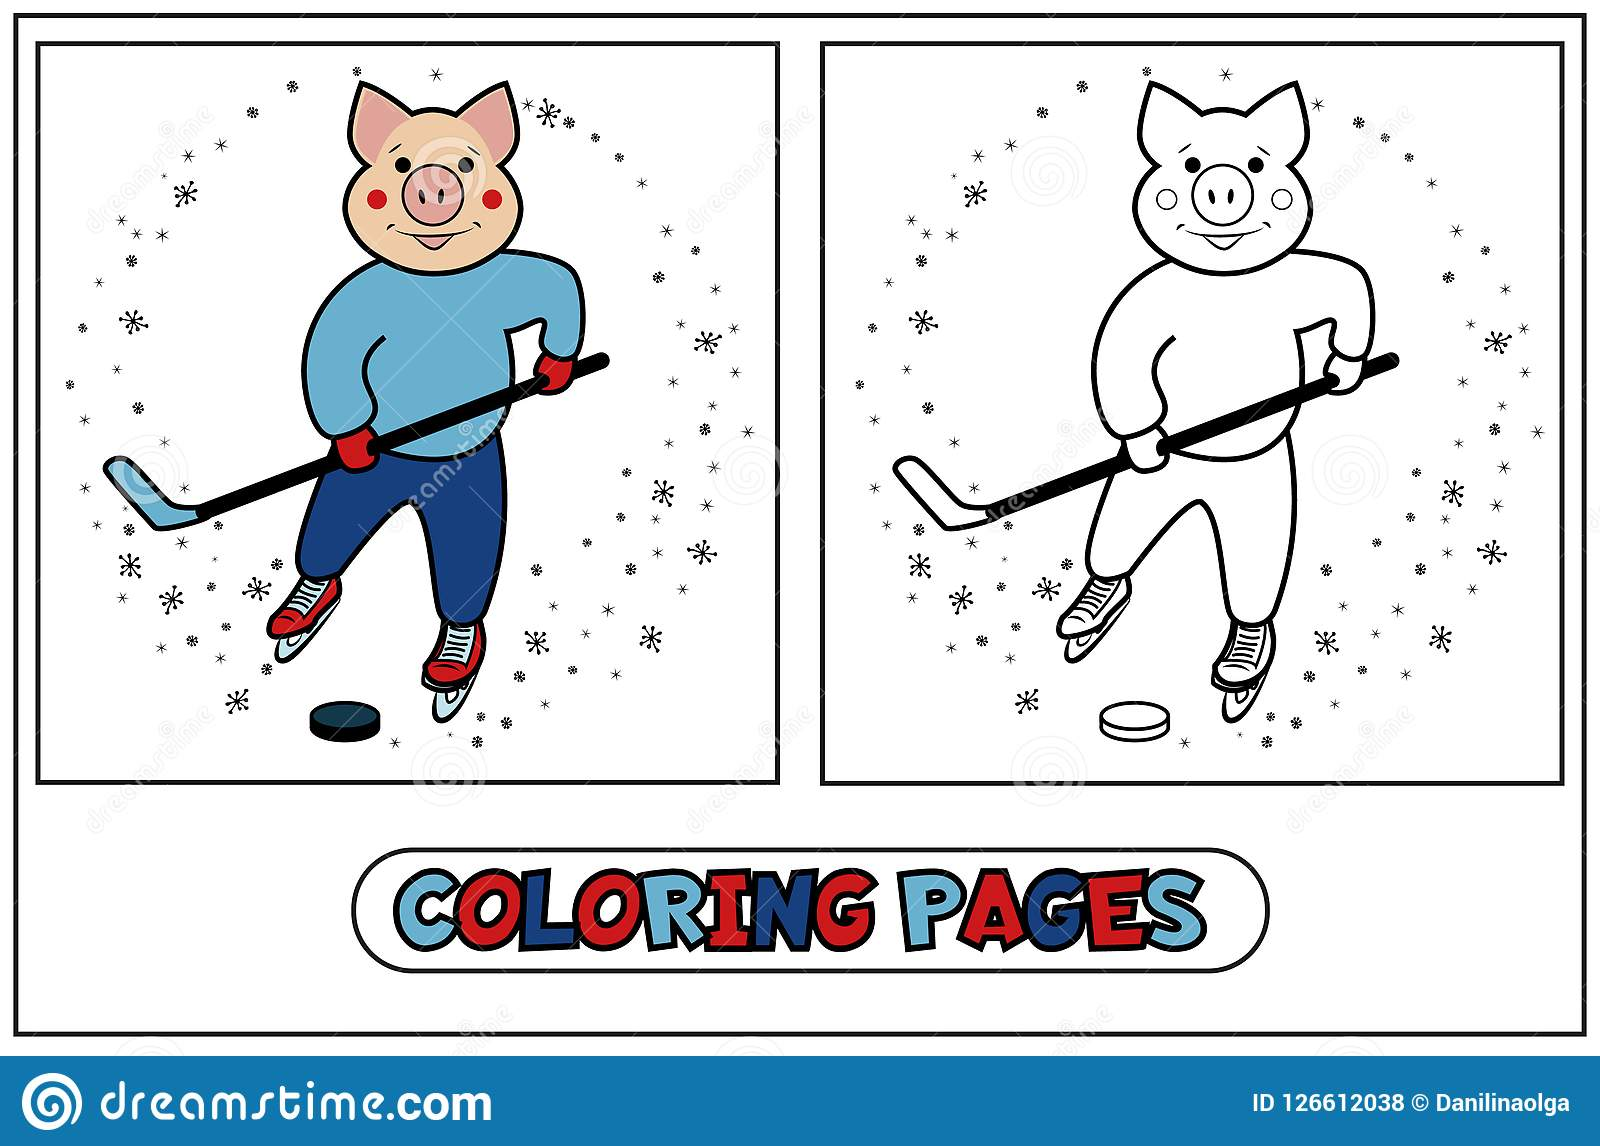 NHL coloring pages | Free Coloring Pages | 1146x1600